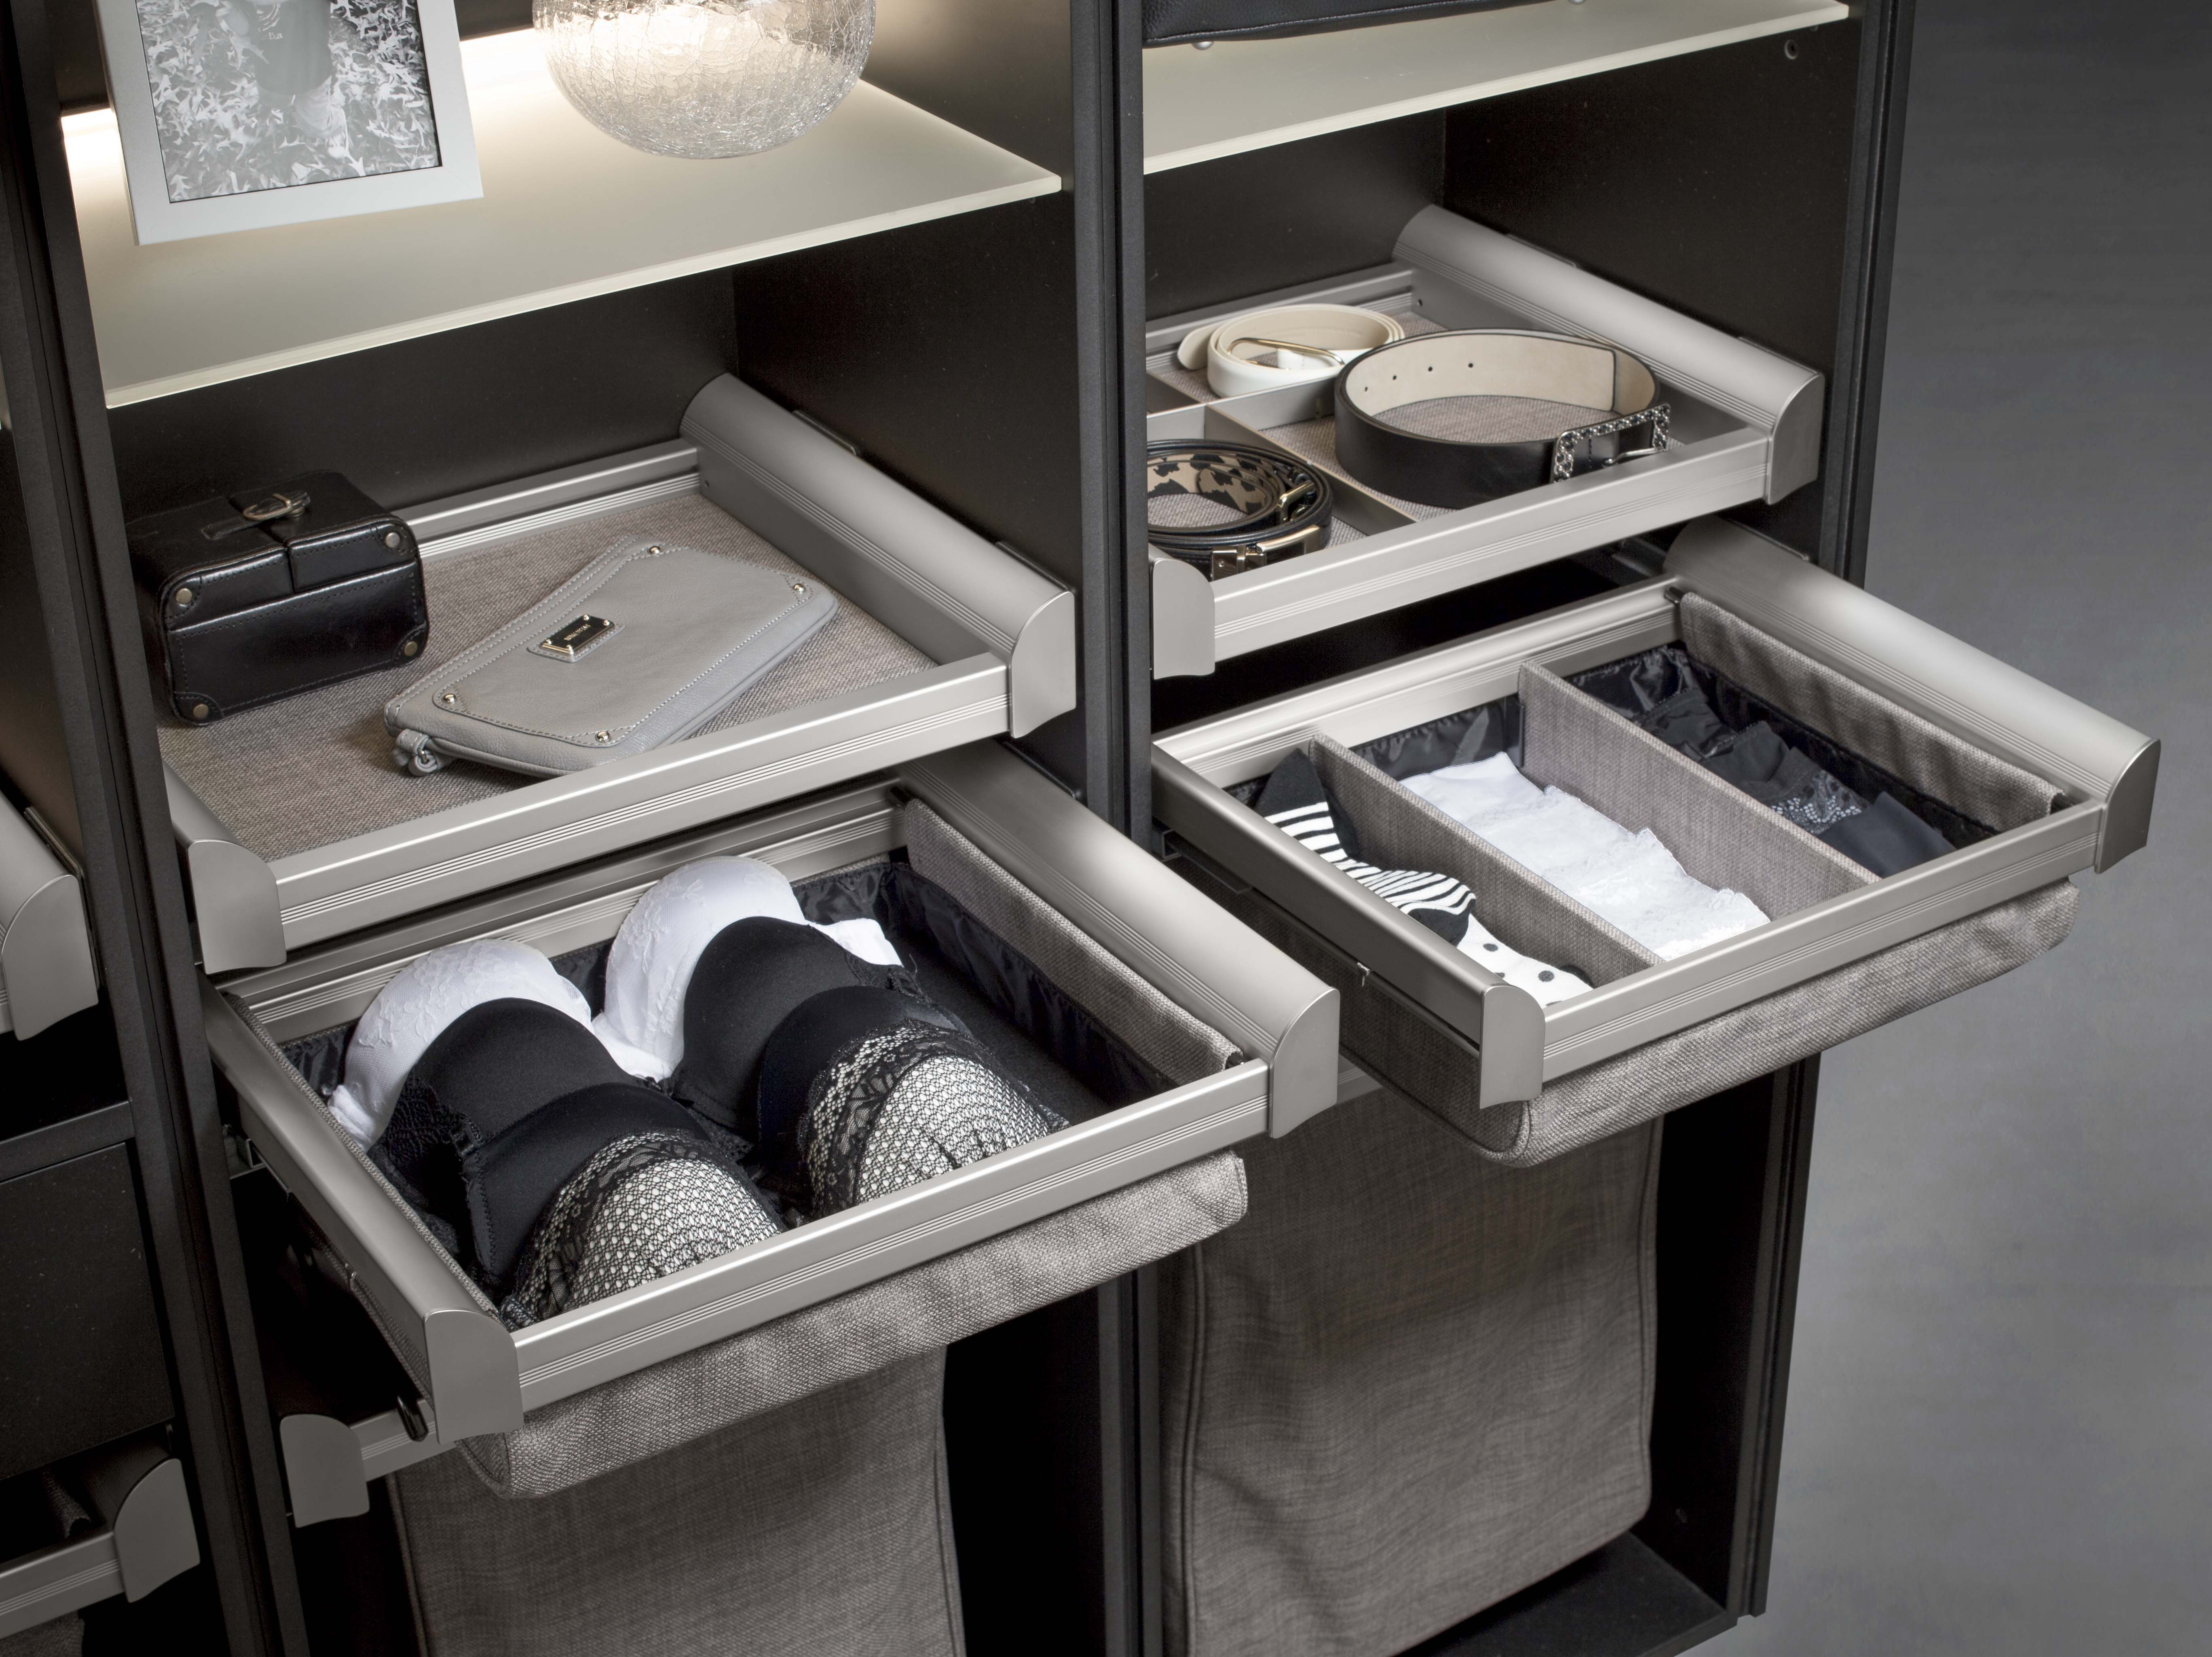 Hafeleu0027s Modular, Custom Closet System Engages Customers With Easy  Solutions | Woodworking Network